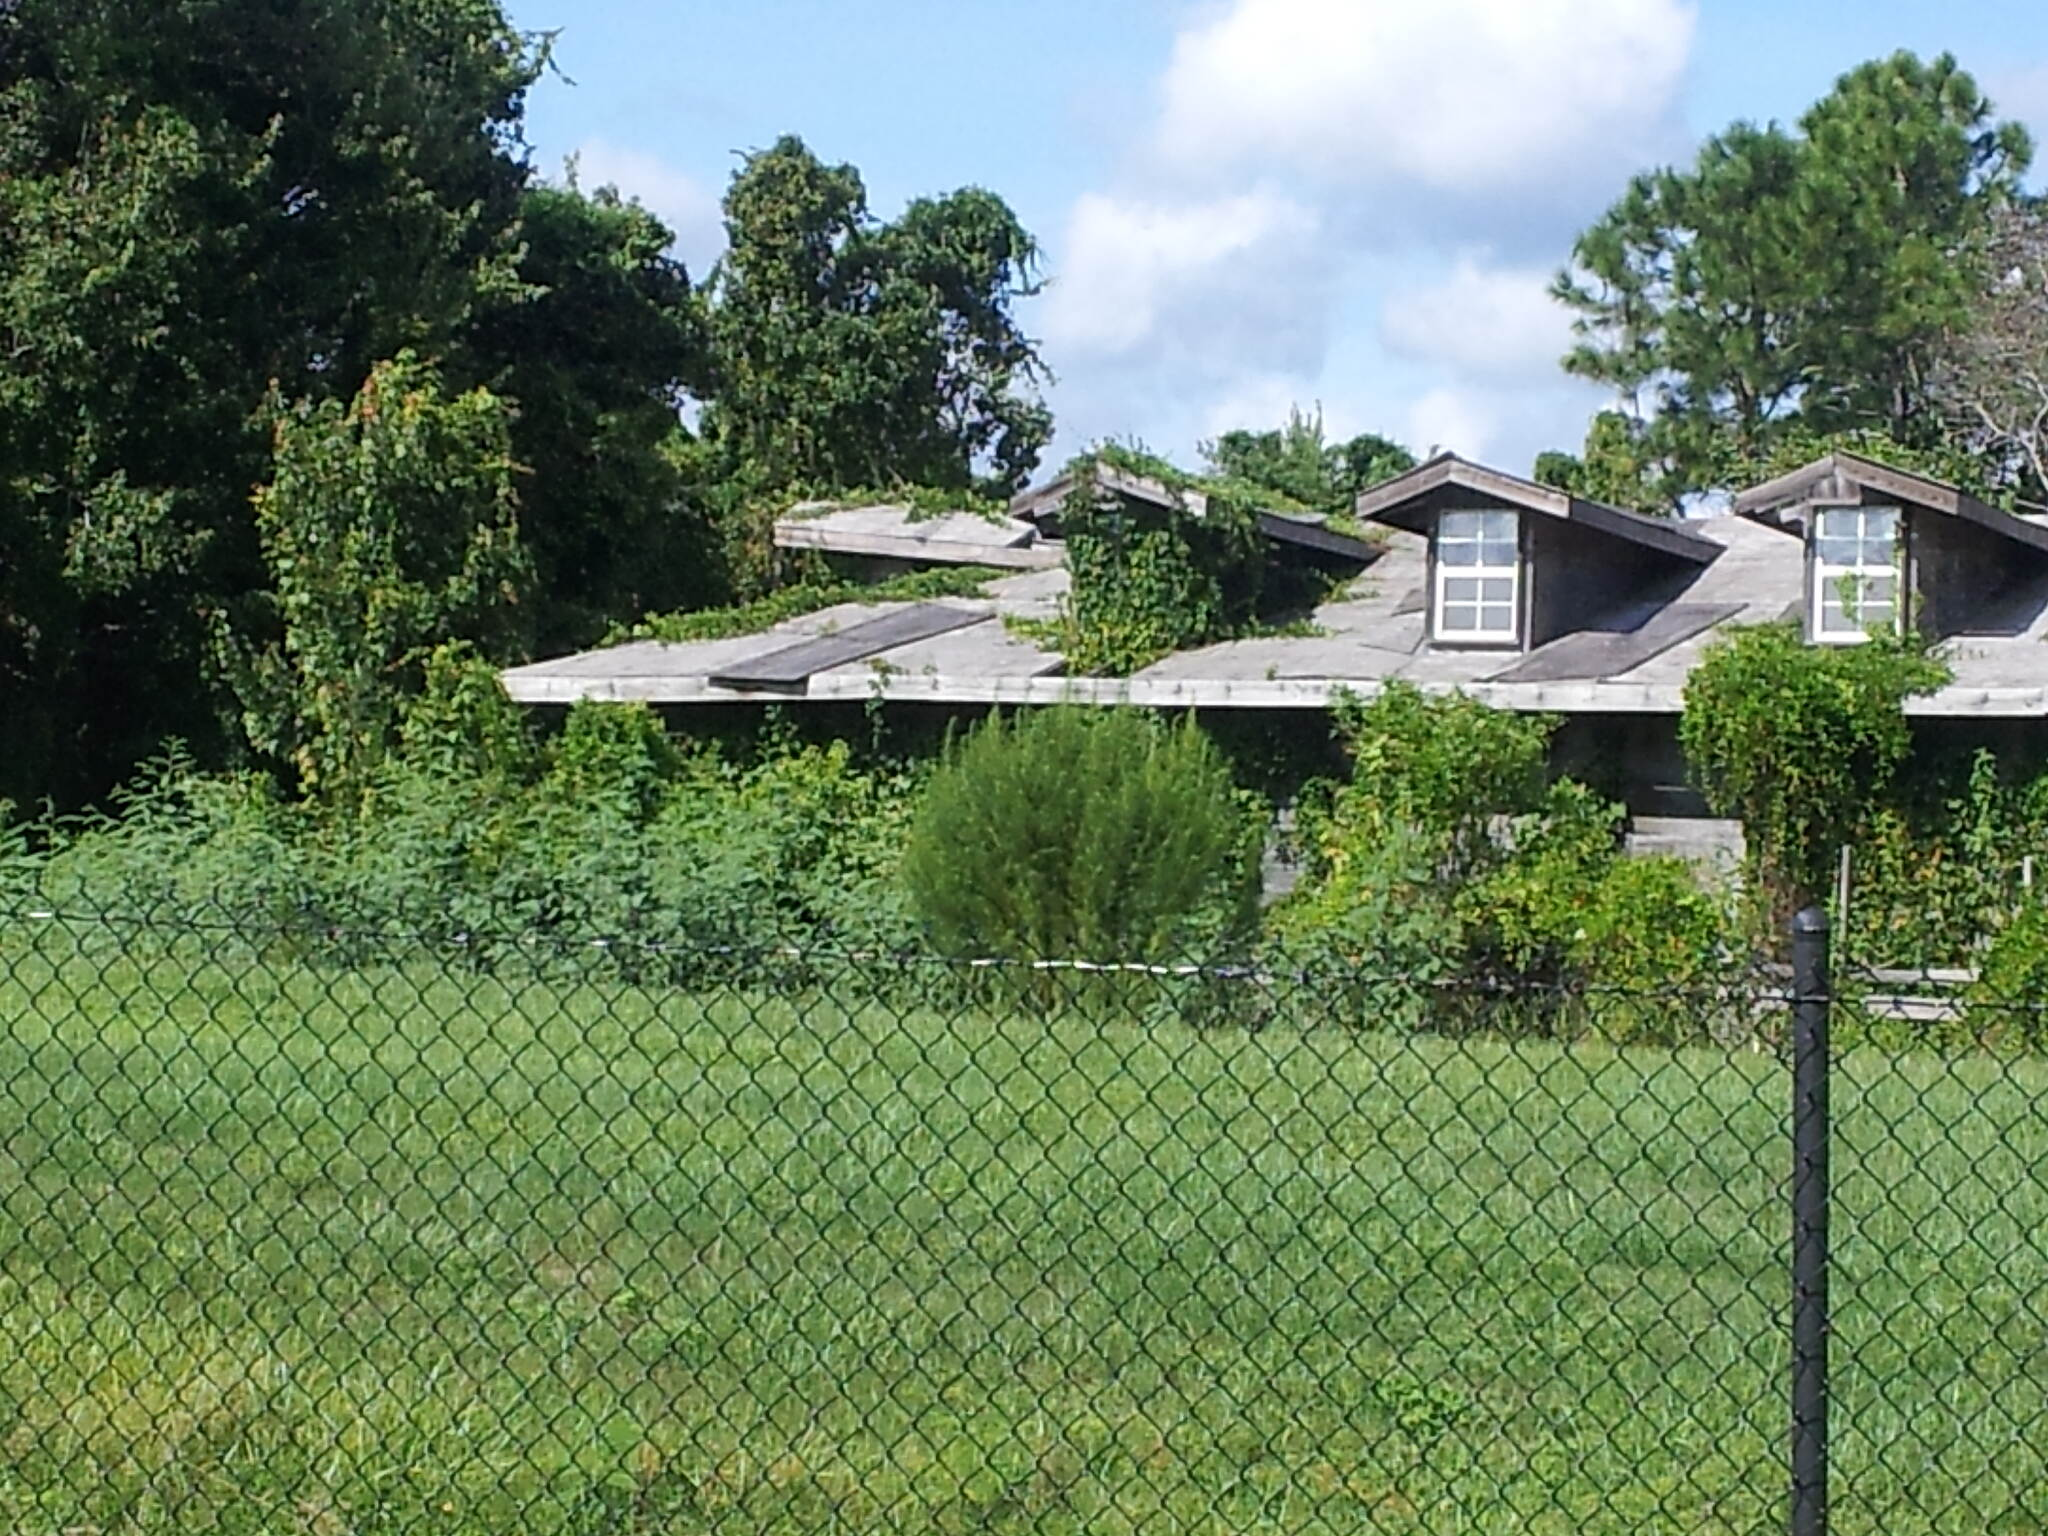 Little Econ Greenway Old house along E entry This old abandoned house on the eastern portal as you turn off of Lokanotosa Trail.